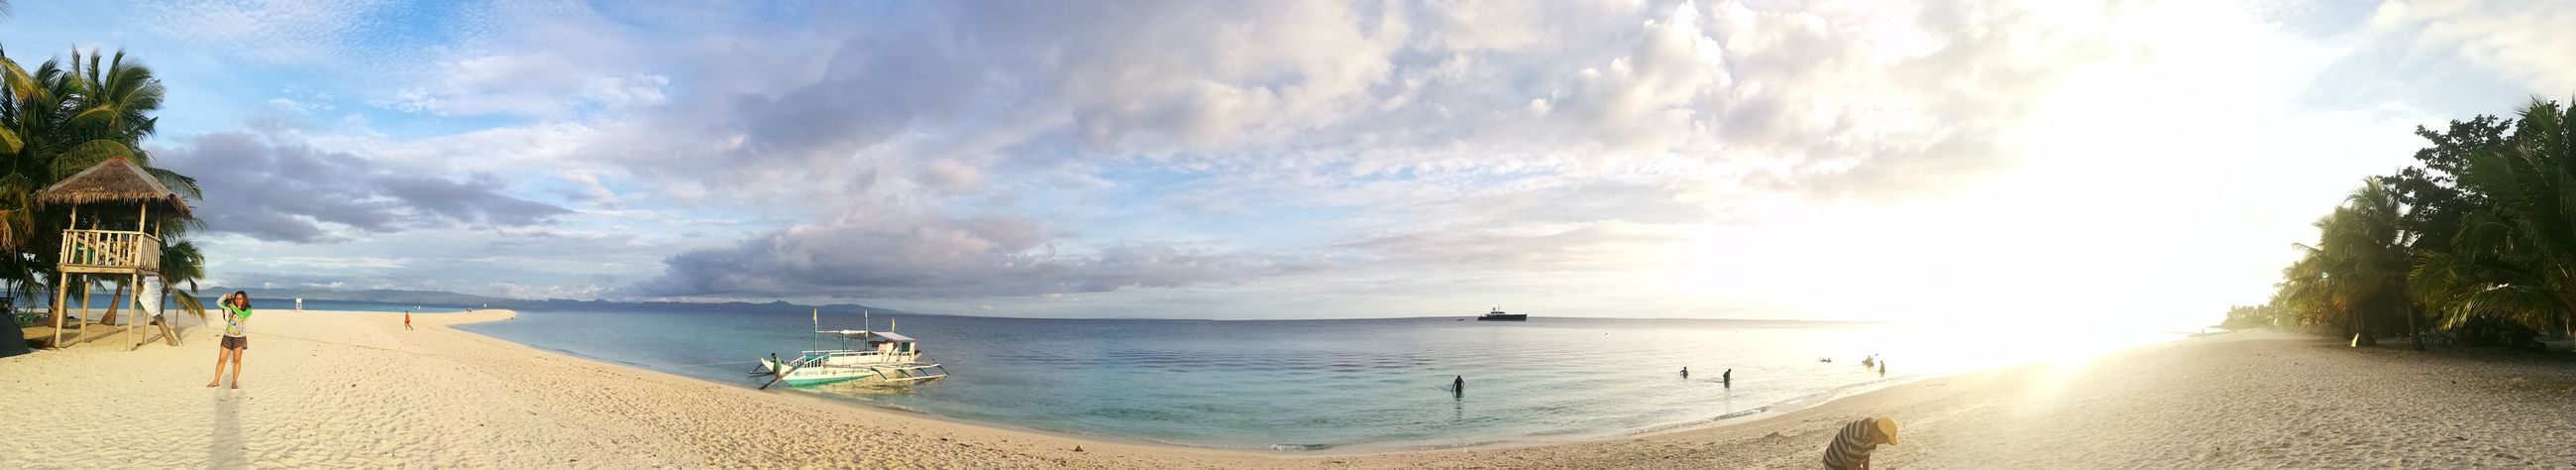 Sea Beach Water Panoramic Horizon Over Water Outdoors Vacations Travel Destinations Sky No People Scenics Day Beauty In Nature Nautical Vessel Nature HuaweiP9 HuaweiP9Photography HuaweiP9leica Huawei P9 Photos Huawei Shots Huaweiphotography Kalanggaman Island Philippinesbeaches Kalanggamanisland Philippines